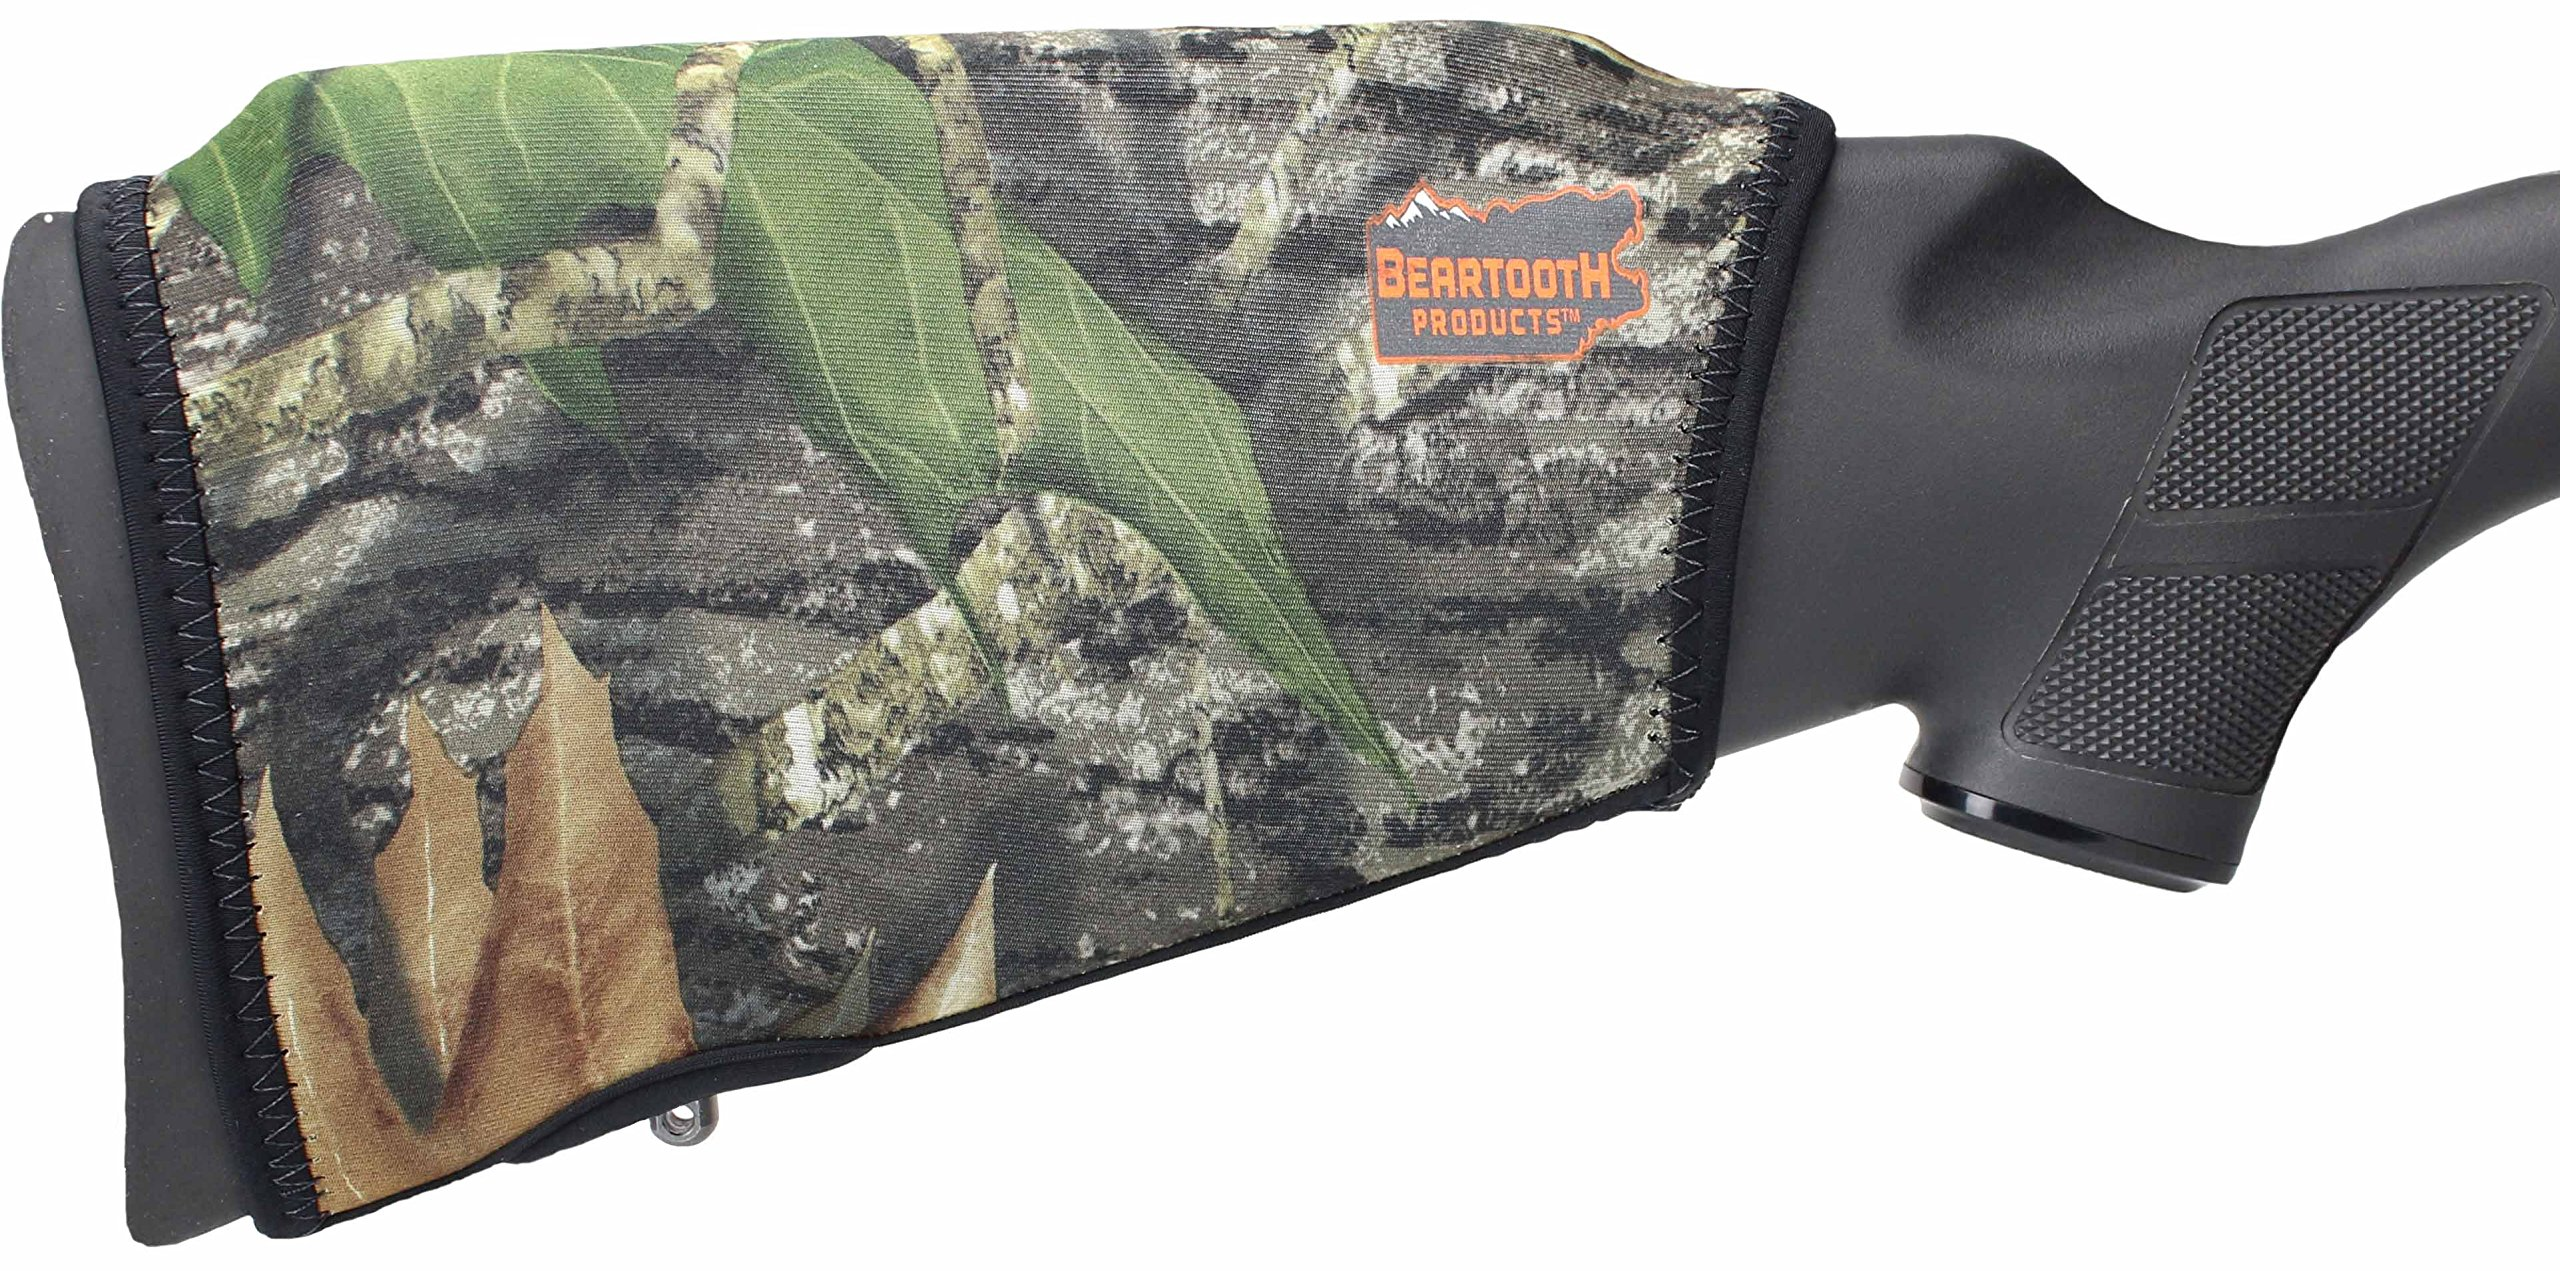 Beartooth Comb Raising Kit 2.0 - Premium Neoprene Gun Stock Cover + (5) Hi-density Foam Inserts - NO LOOPS MODEL (Mossy Oak Break-up) by Beartooth